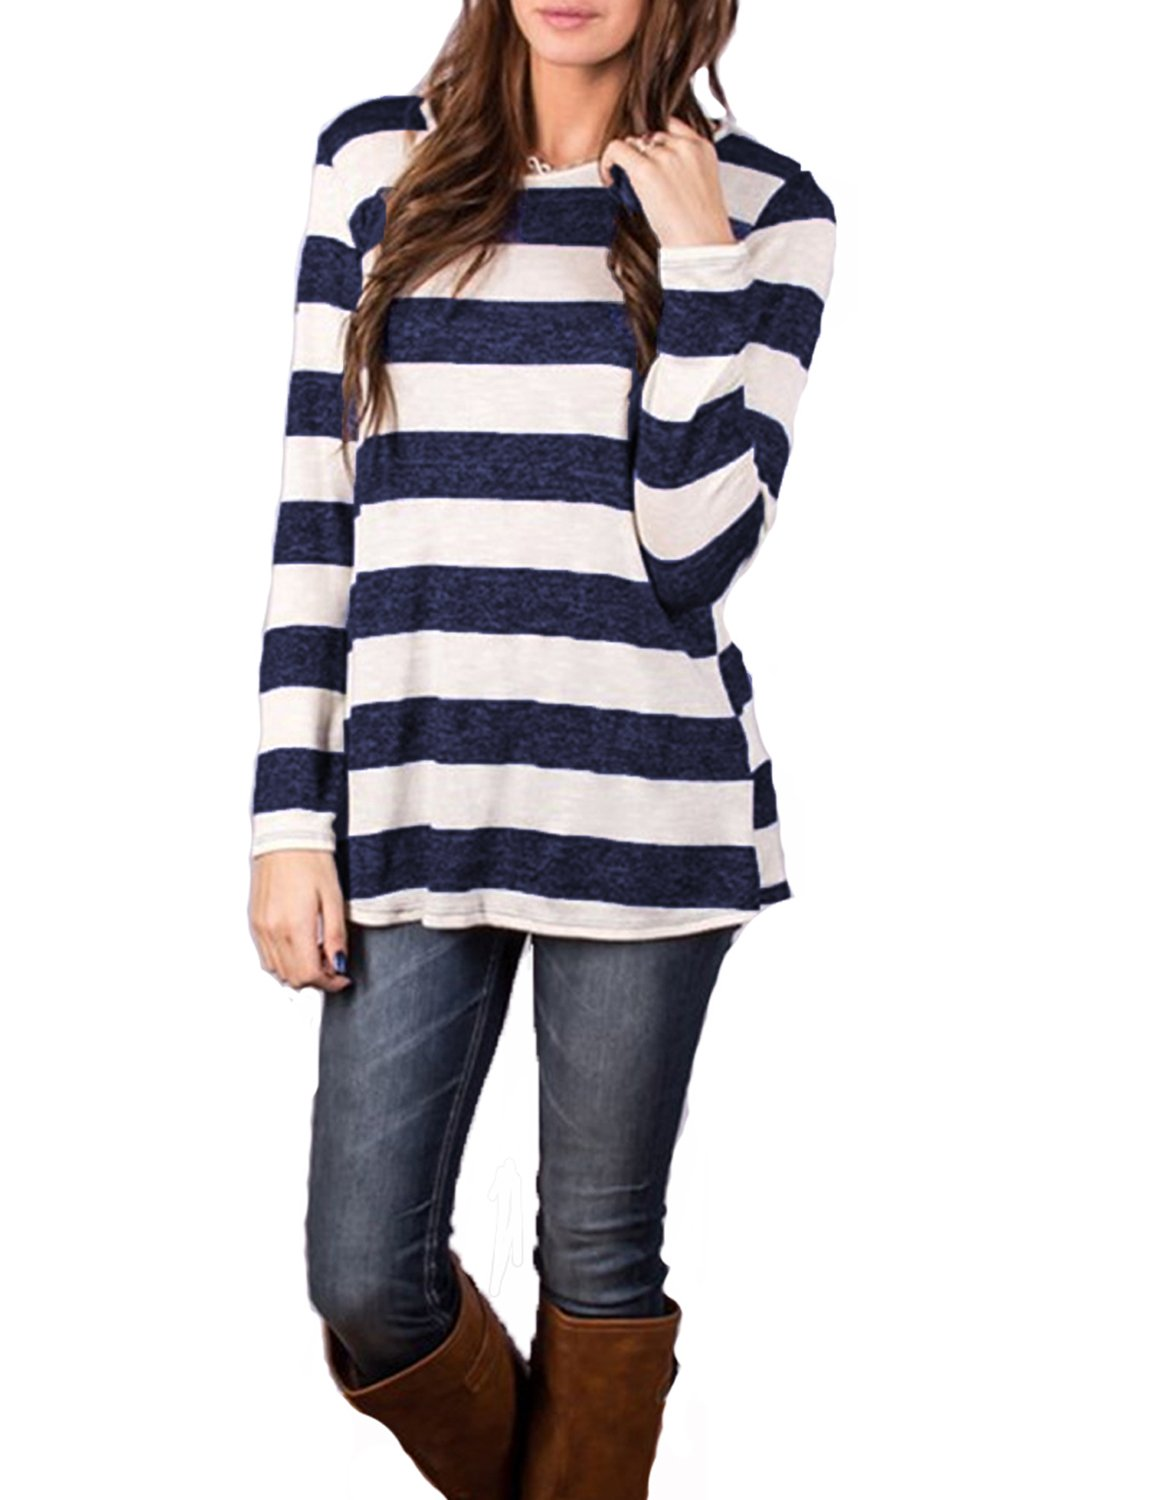 Hount Women's Casual T-Shirt Long Sleeve Tunic Tops Round Neck Loose Comfy with Button (Navy Blue, L)